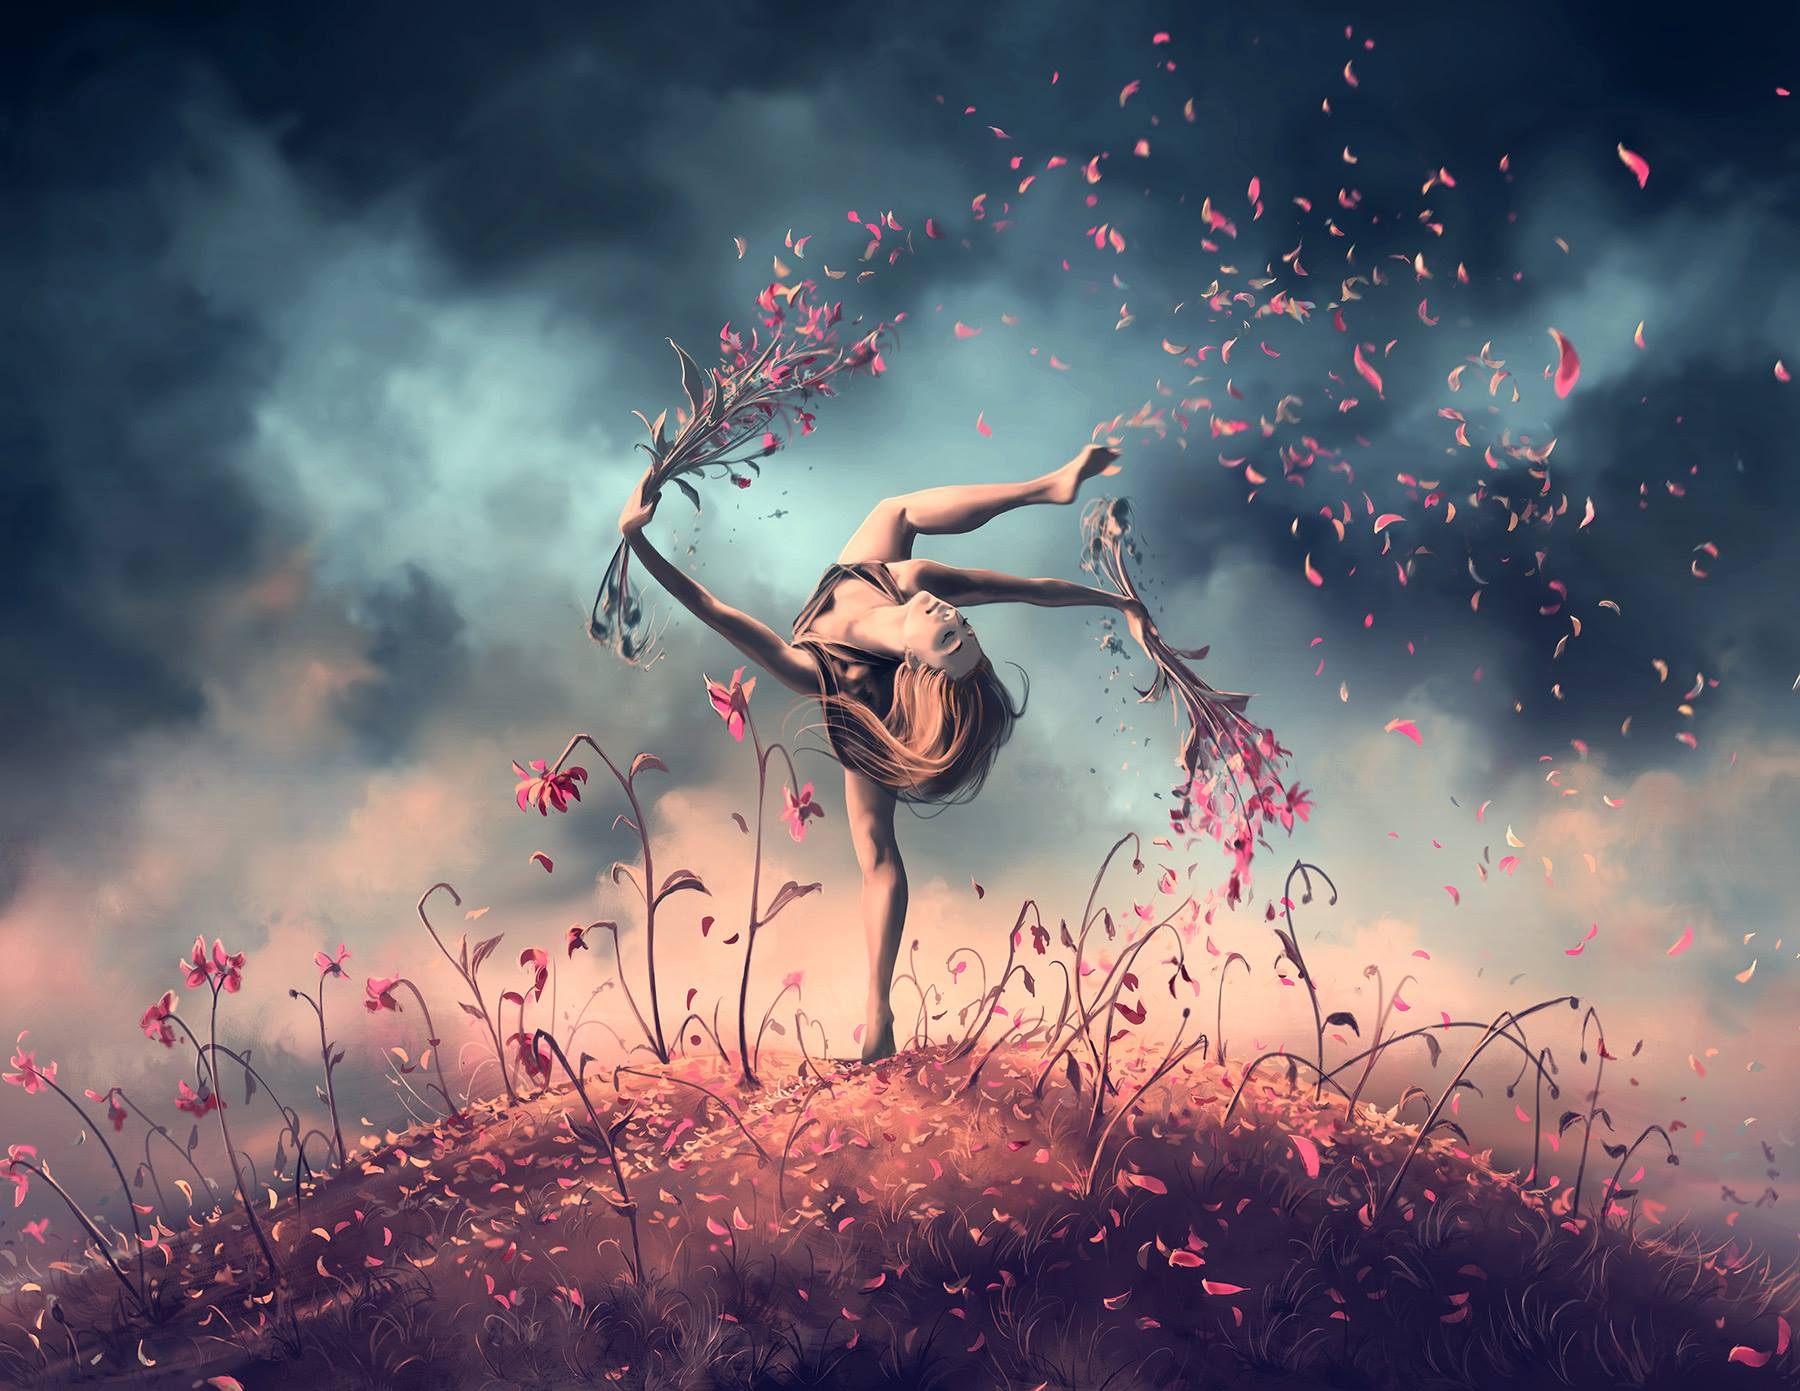 The Dancing Zodiac by Cyril Rolando